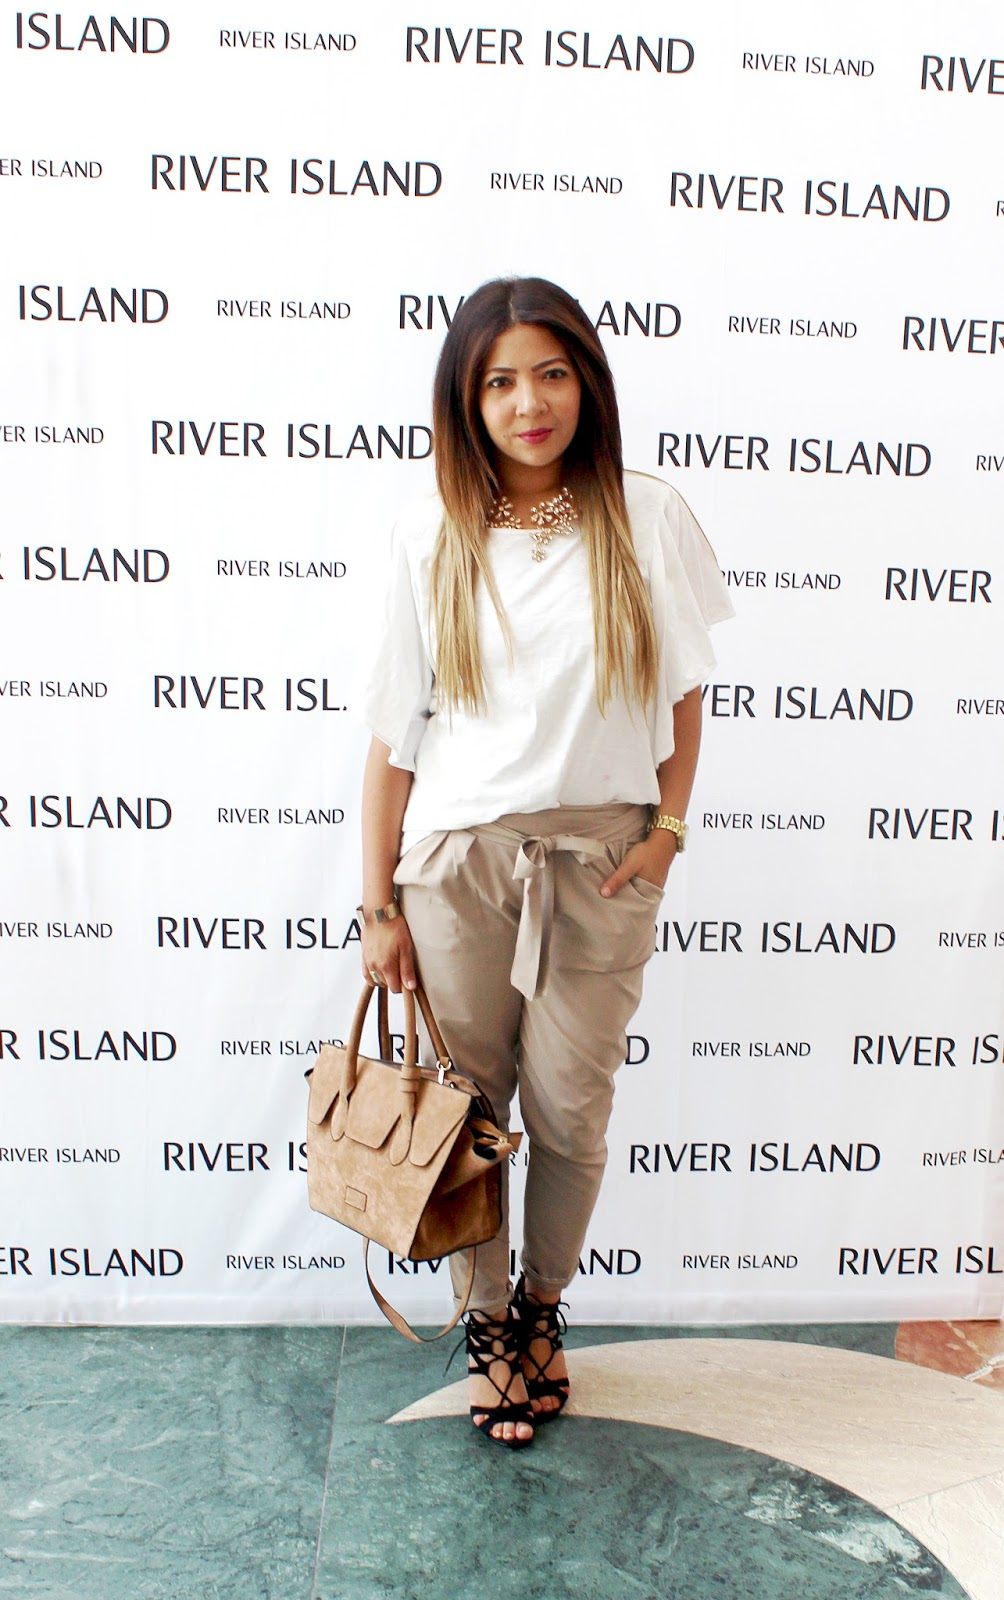 river island, river island canal walk, cape town fashion blogger, fashion blogger cape town, river island south africa